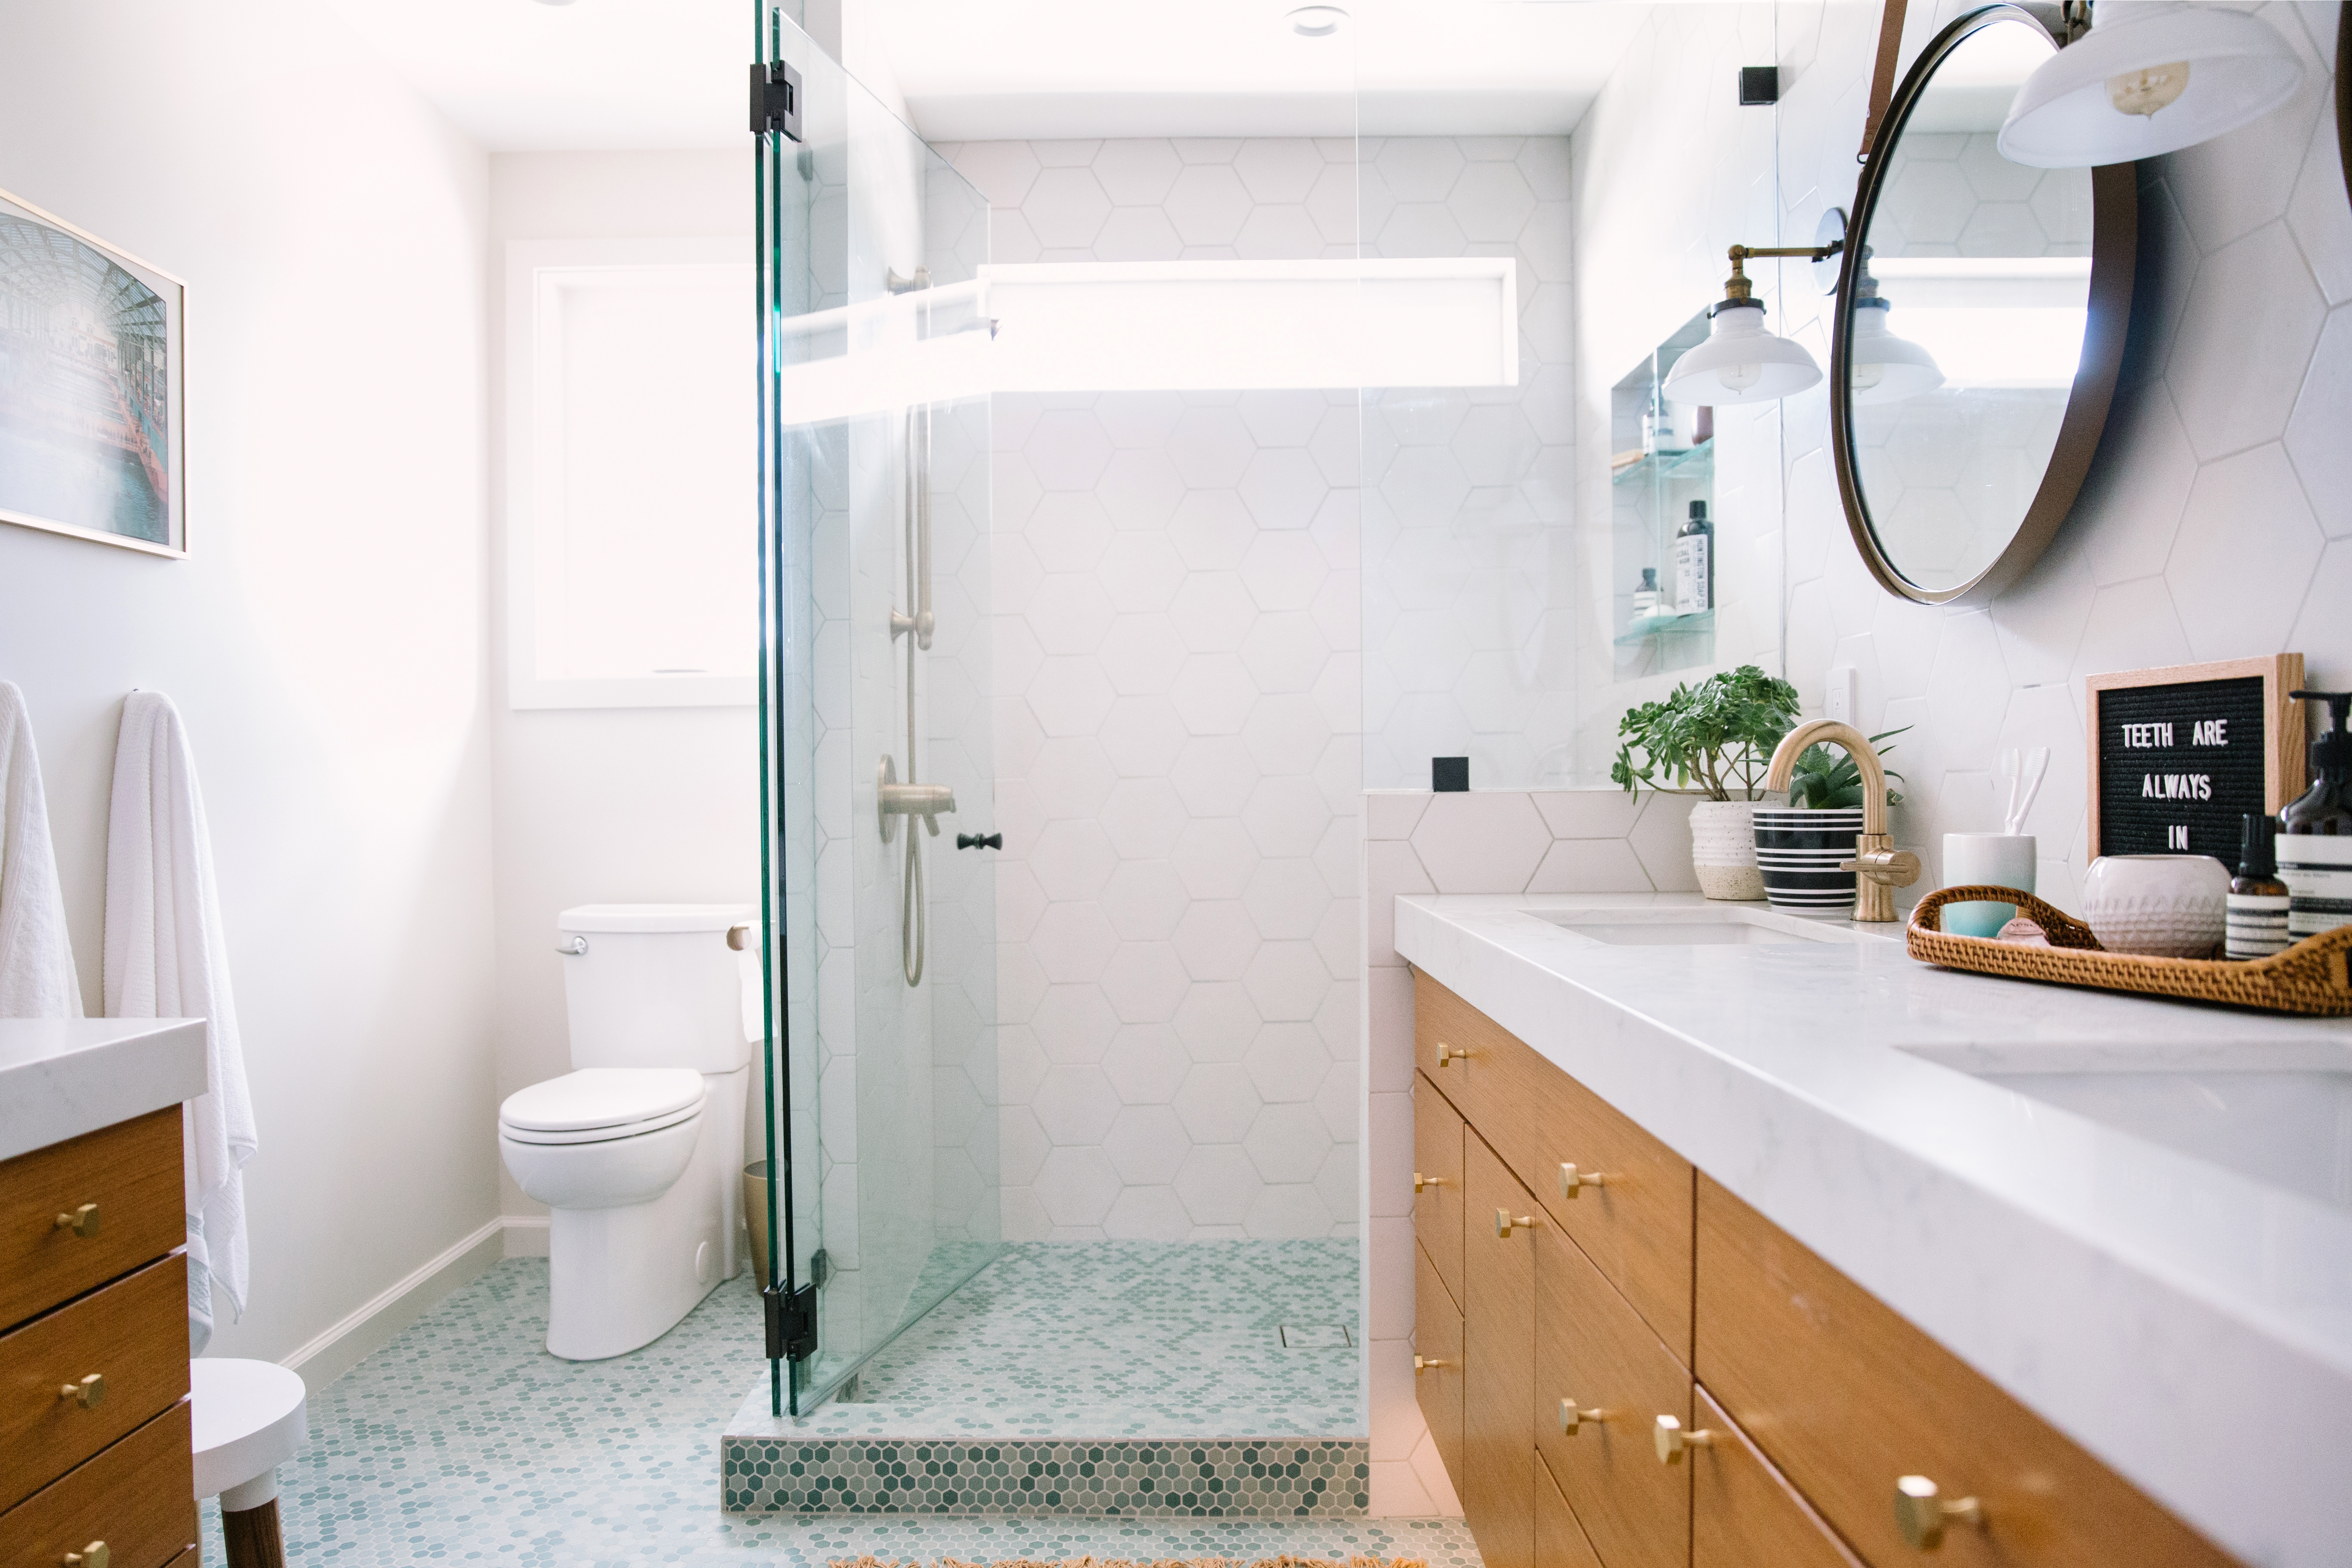 The New Open Floor Plan Features Ample Storage Double Sinks A Large Shower Plus Vanity That S Can Look Forward To Using More And As They